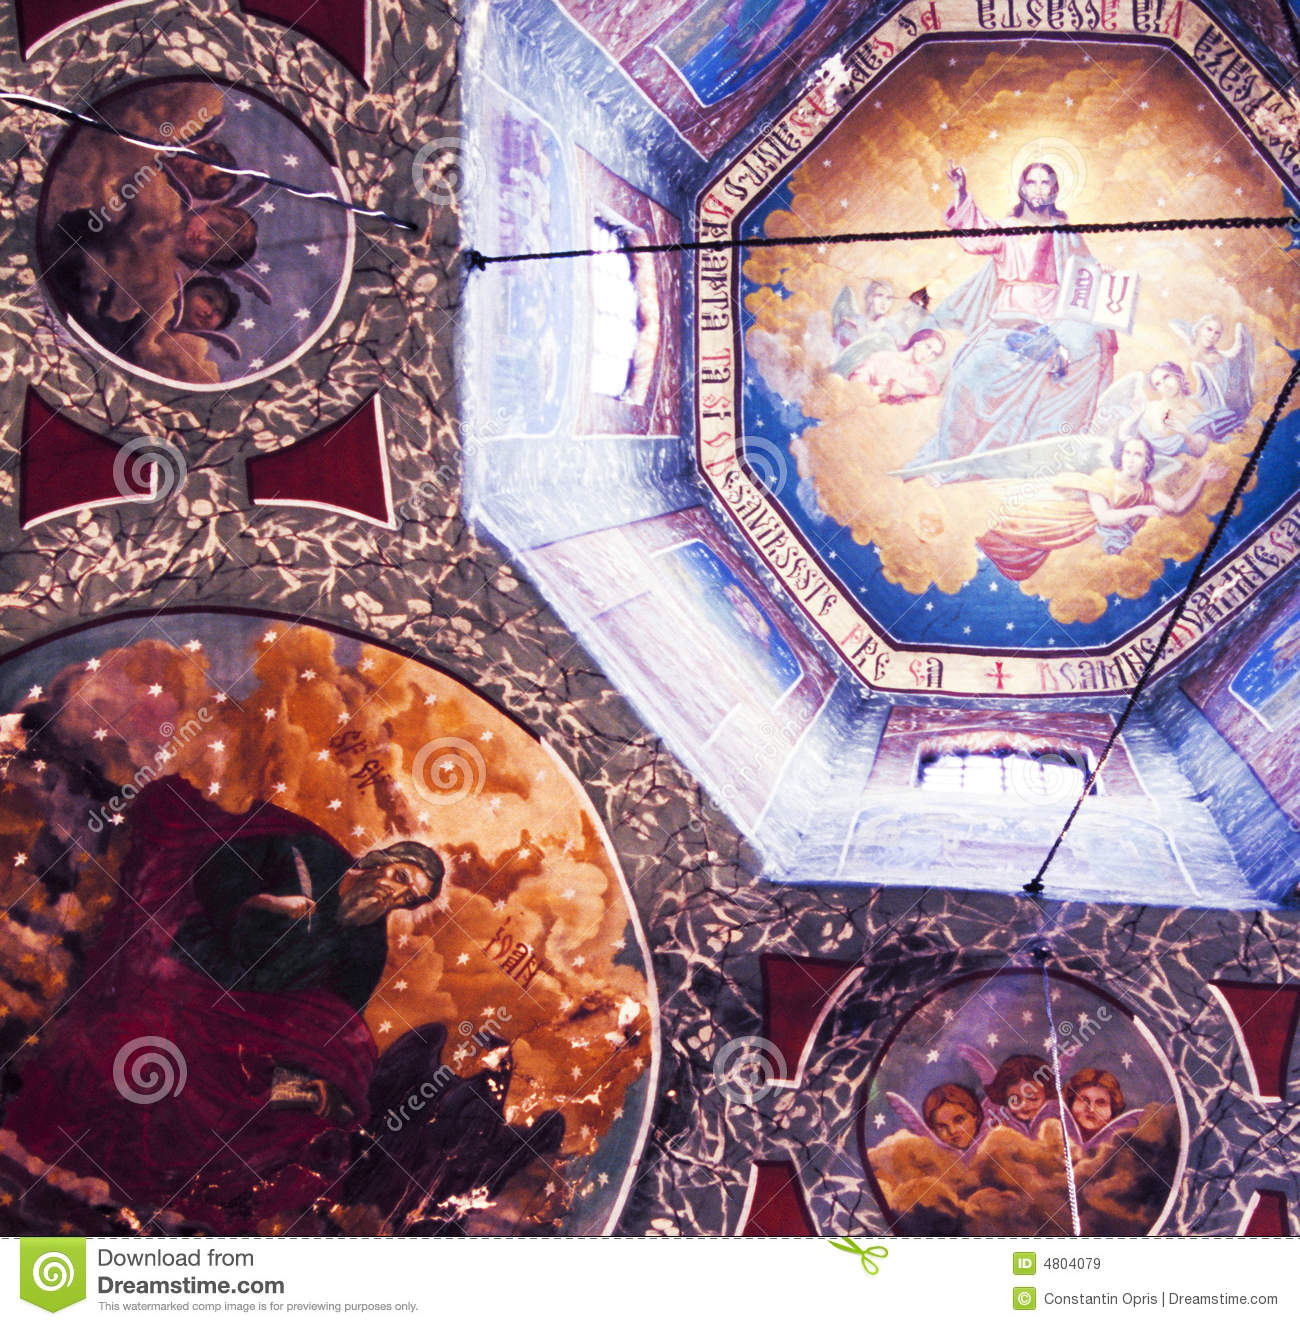 Christian murals royalty free stock images image 4804079 for Christian mural